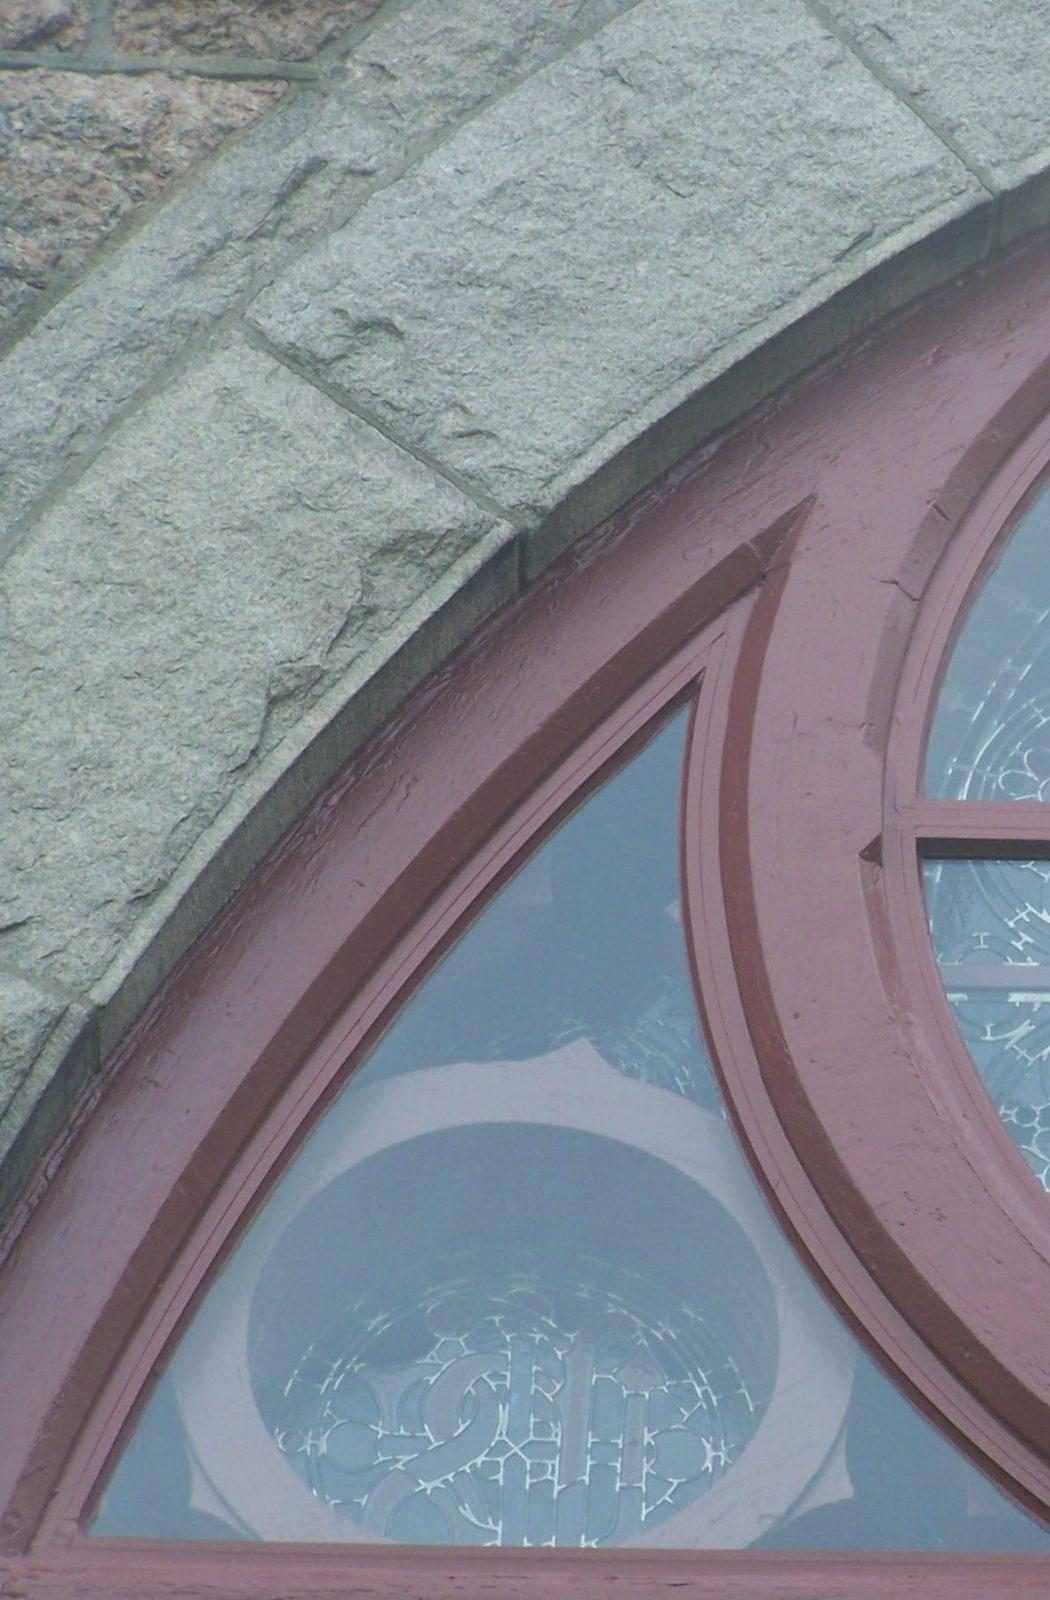 stained glass window, stained glass studio, stained glass protective glass